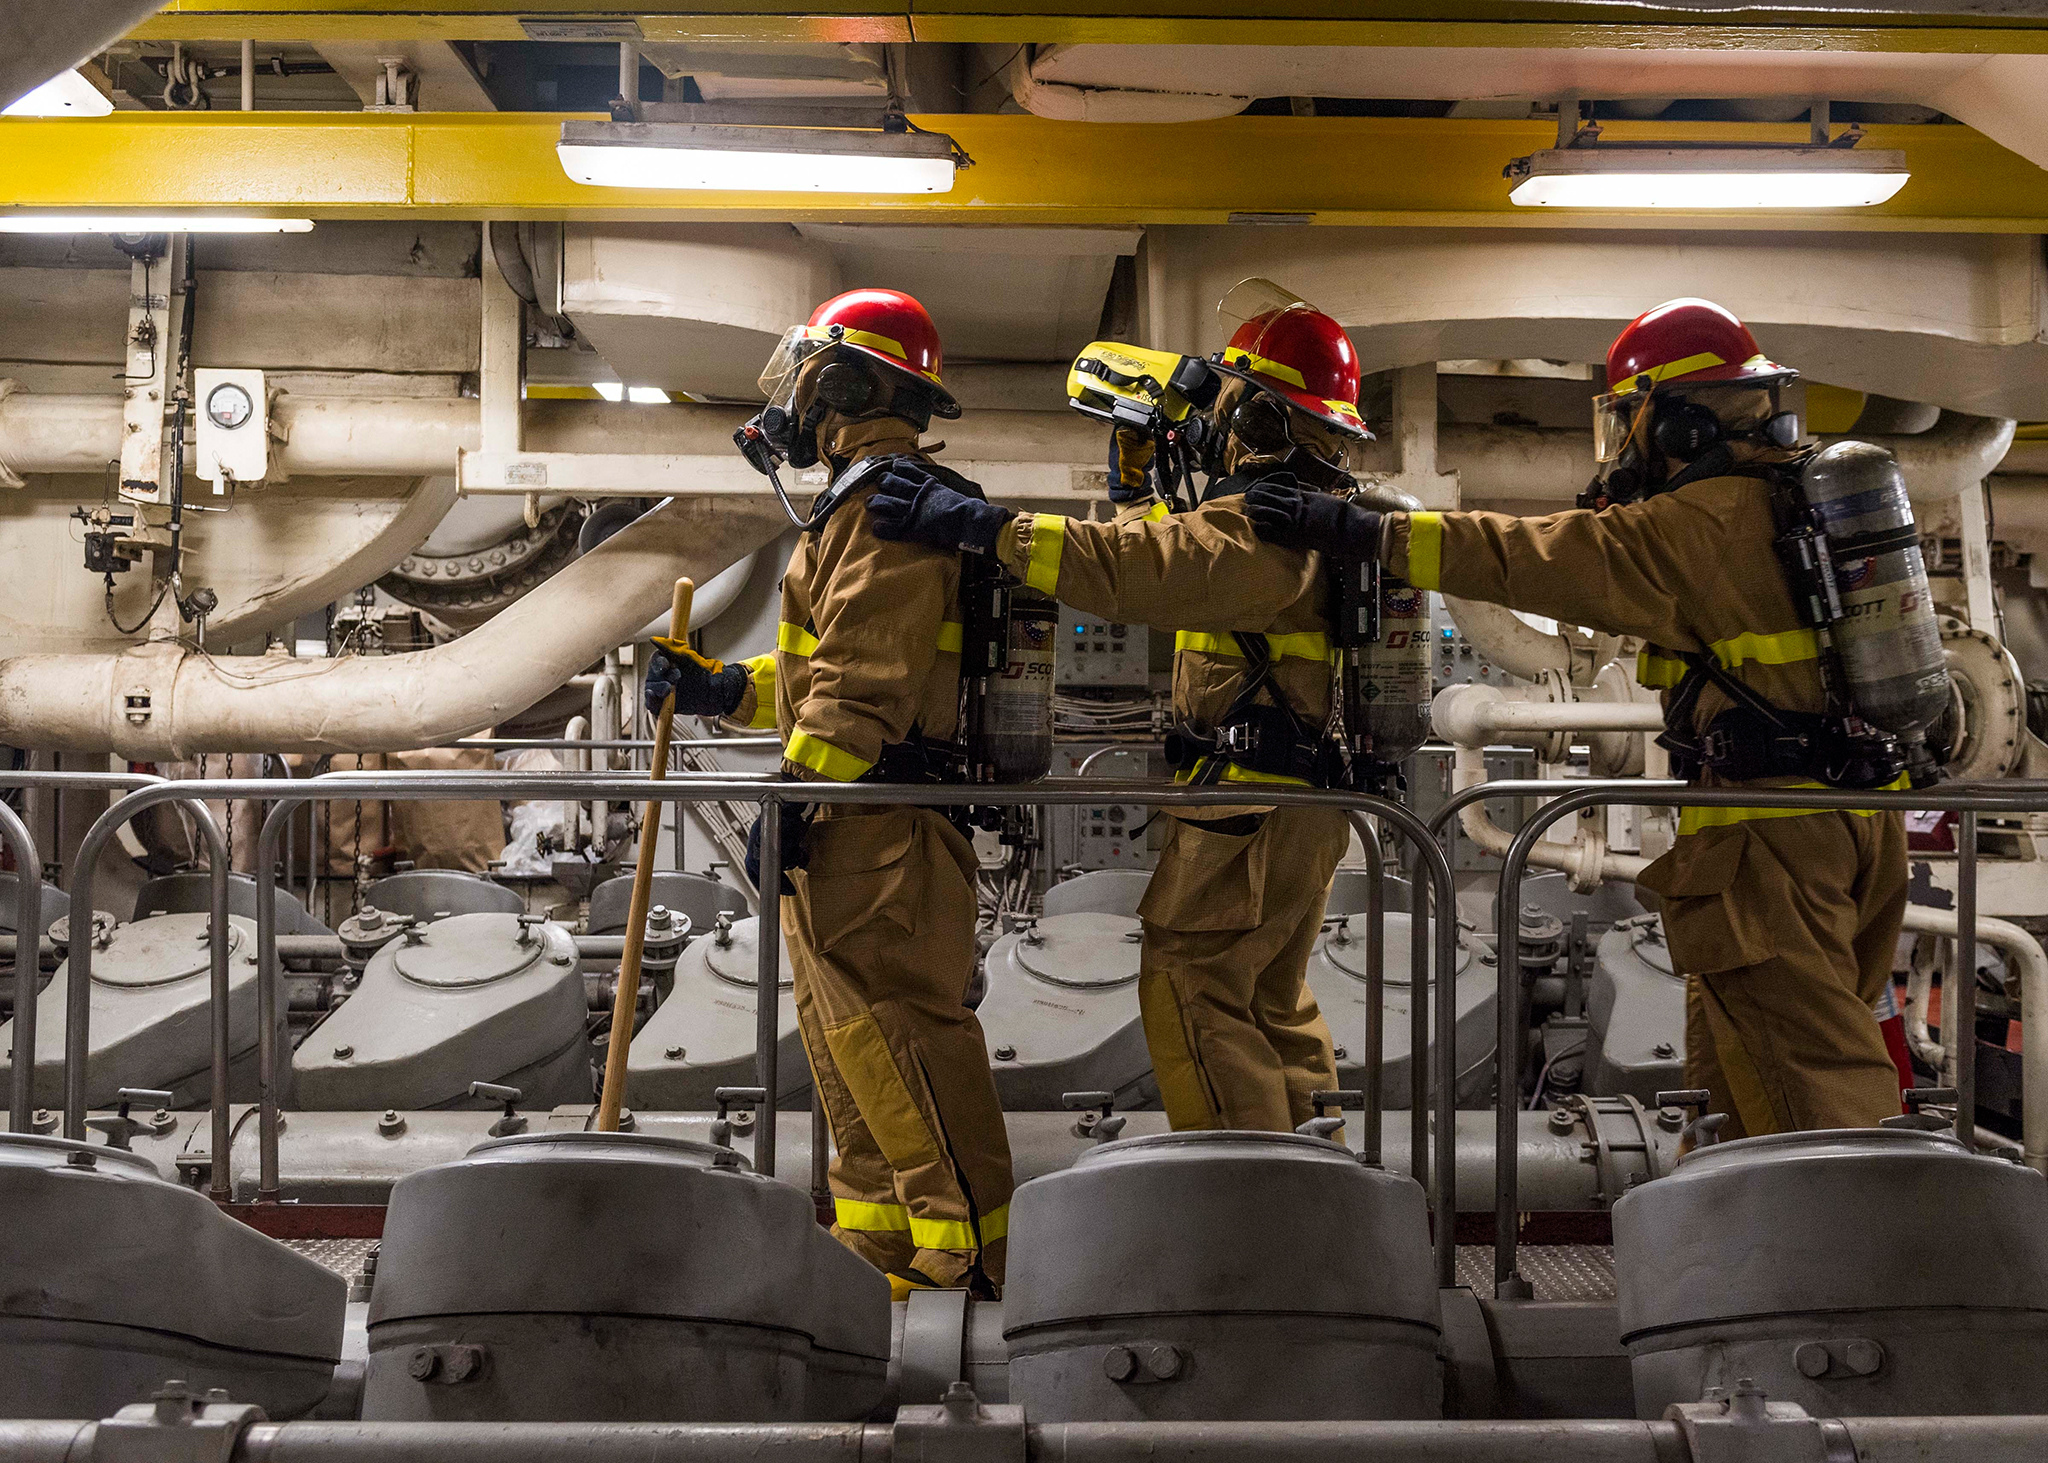 Sailors simulate overhauling a space using a Naval Firefighting Thermal Imager on Feb. 13, 2019, during a main space fire drill in the Main Machinery Room (MMR) 2 of the amphibious dock landing ship USS Ashland (LSD 48) in the South China Sea. (Mass Communication Specialist 2nd Class Markus Castaneda/Navy)